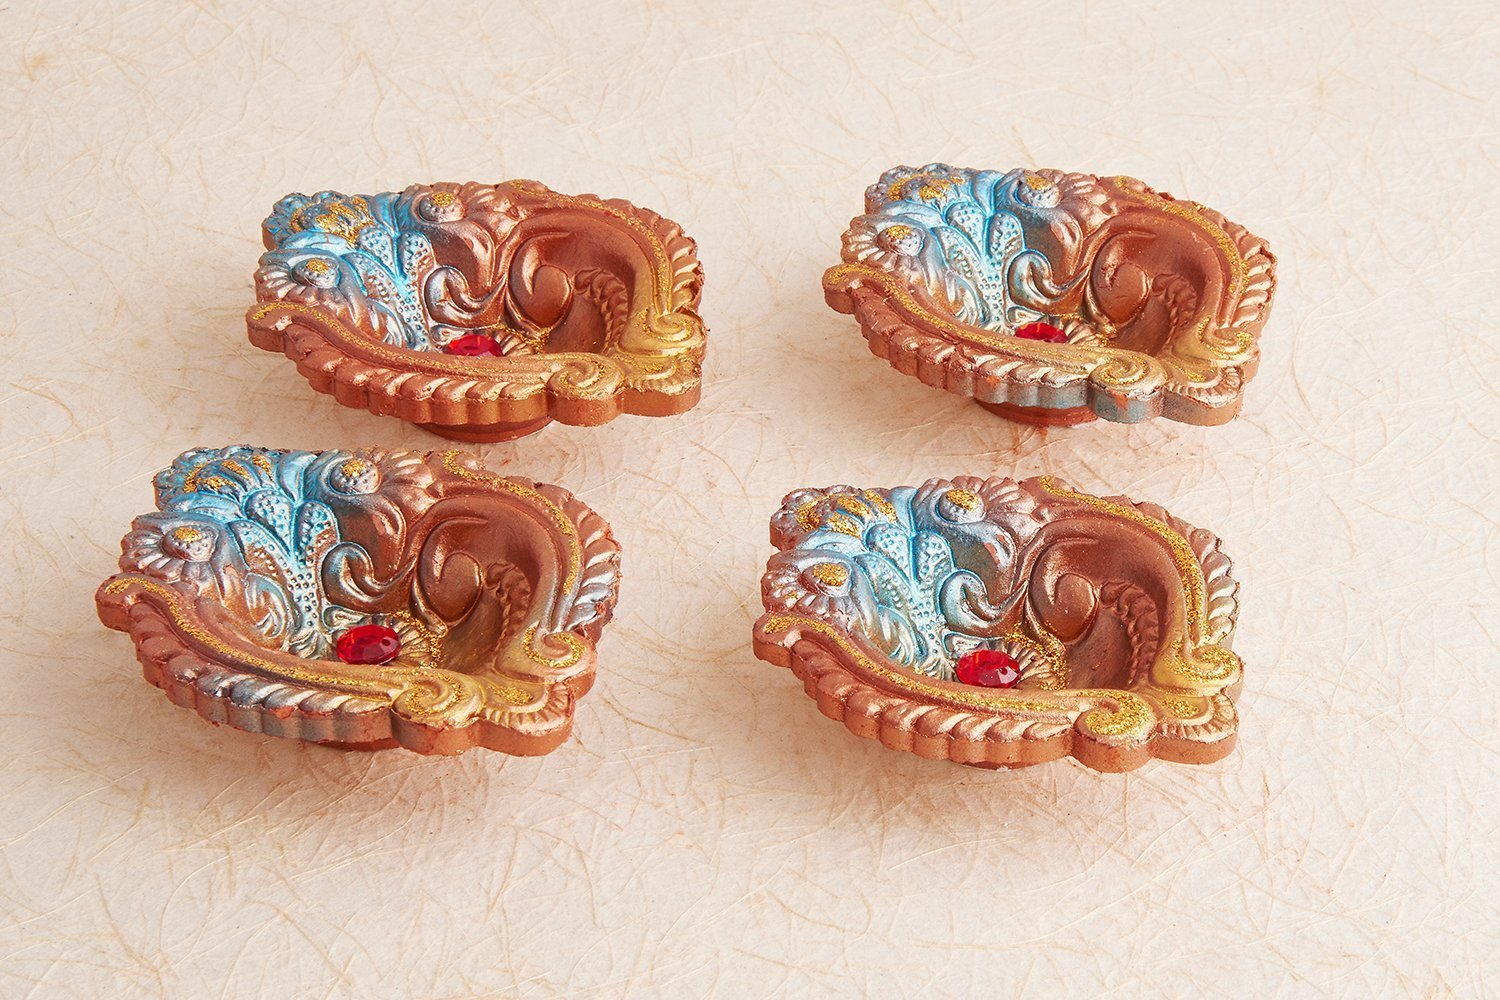 Set of 4 Diwali Decorations Colorful Oil Lamp Diya For Pooja /Puja Home Decor Simply Indian Handicrafts